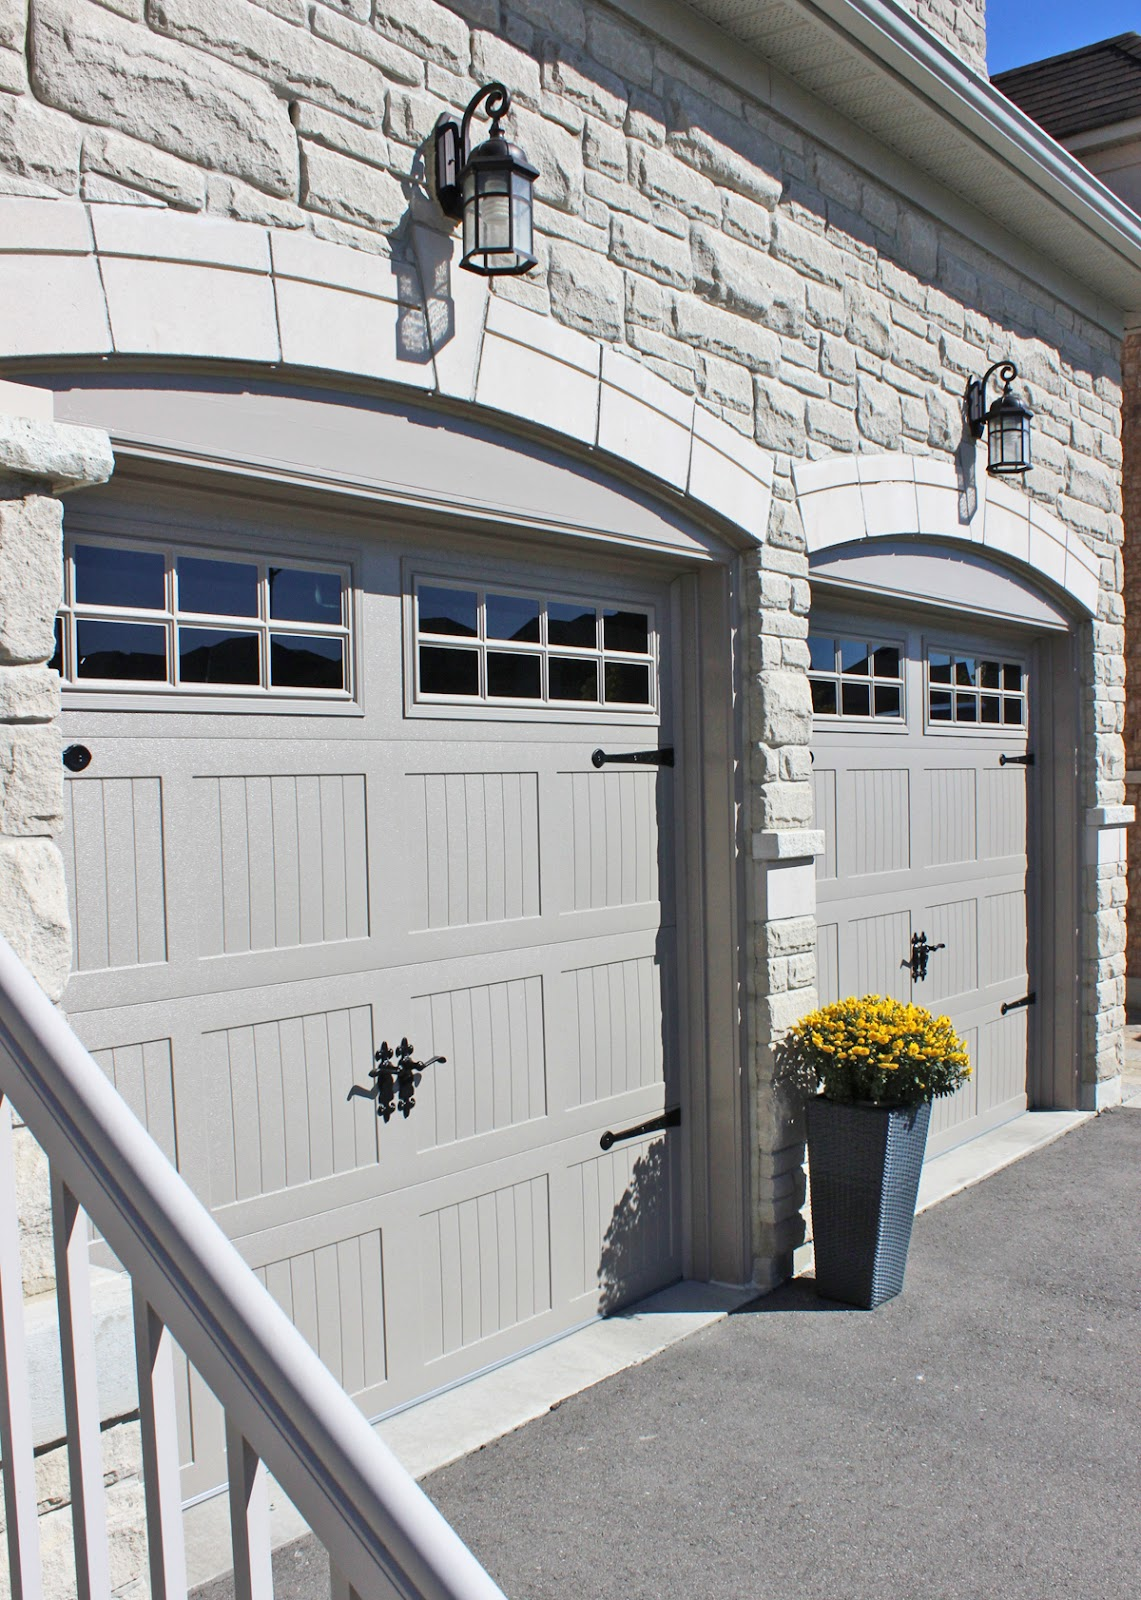 Doors To Garage: AM Dolce Vita: New Garage Doors